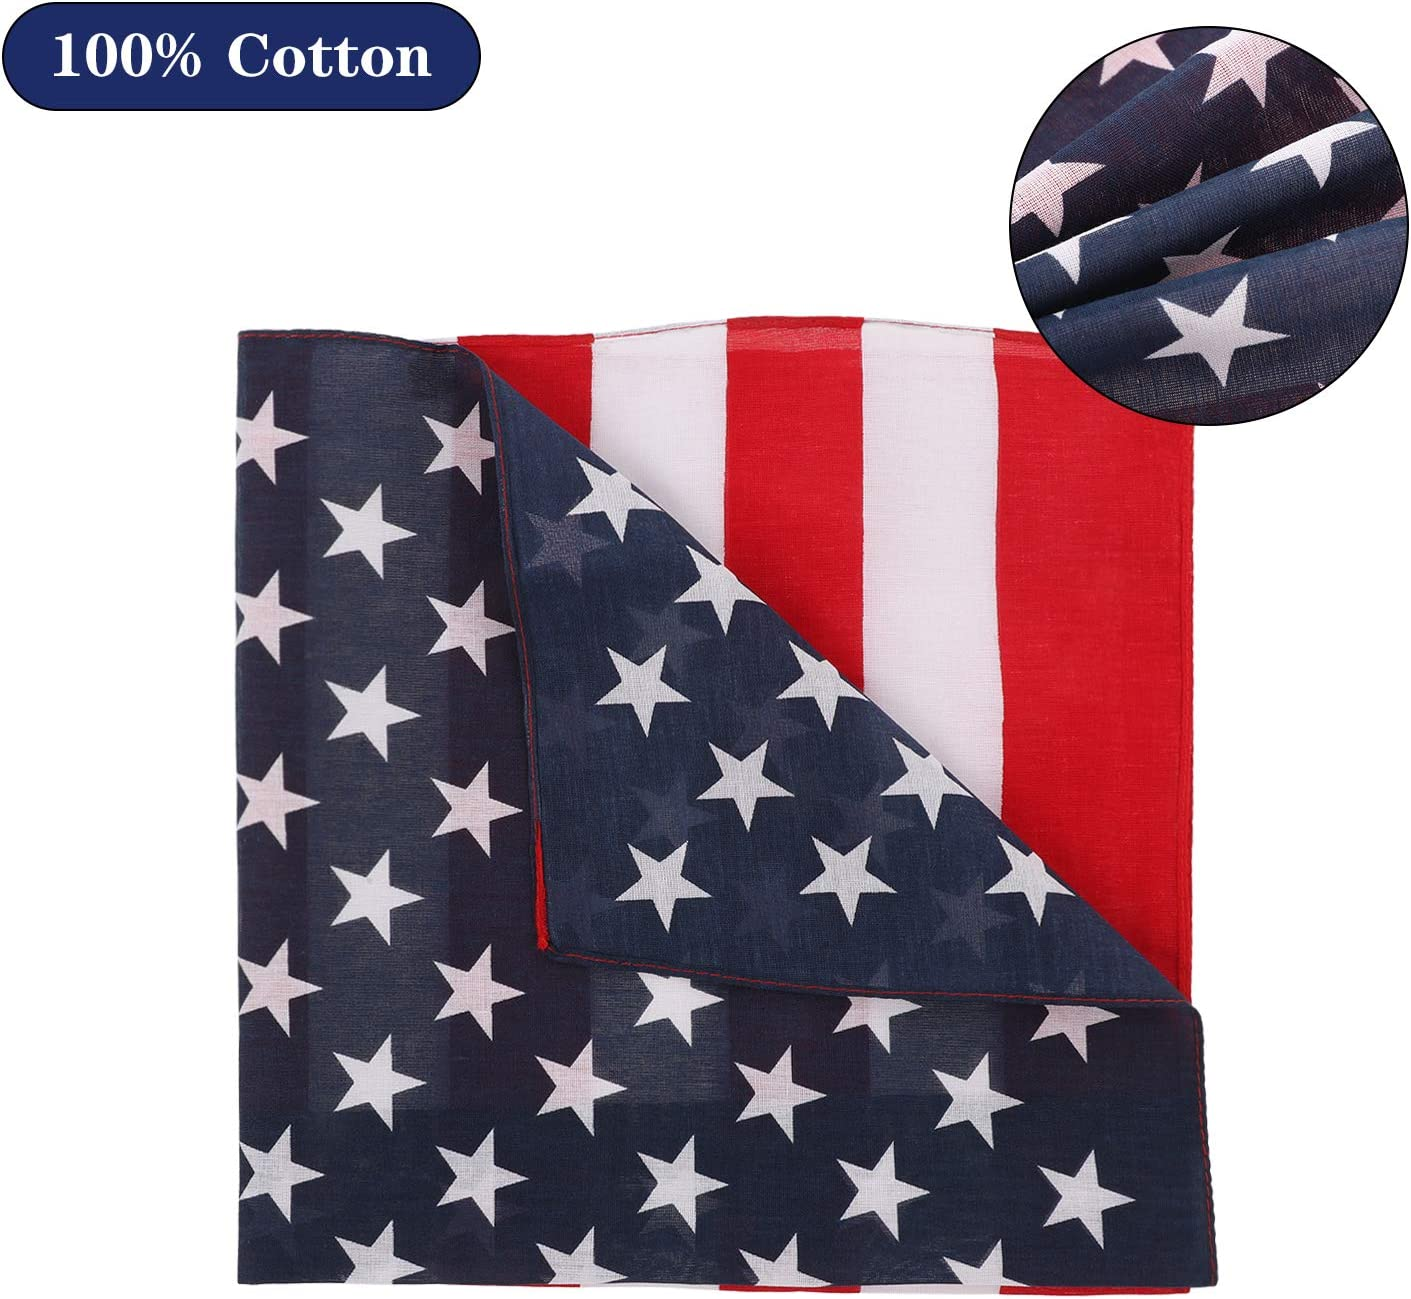 Weewooday 12 Pieces Cowboy Bandanas American Flag Cotton Bandanas Dust-Proof Head Wrap Unisex Wristband Headbands Hair Scarf for Outdoor Activities